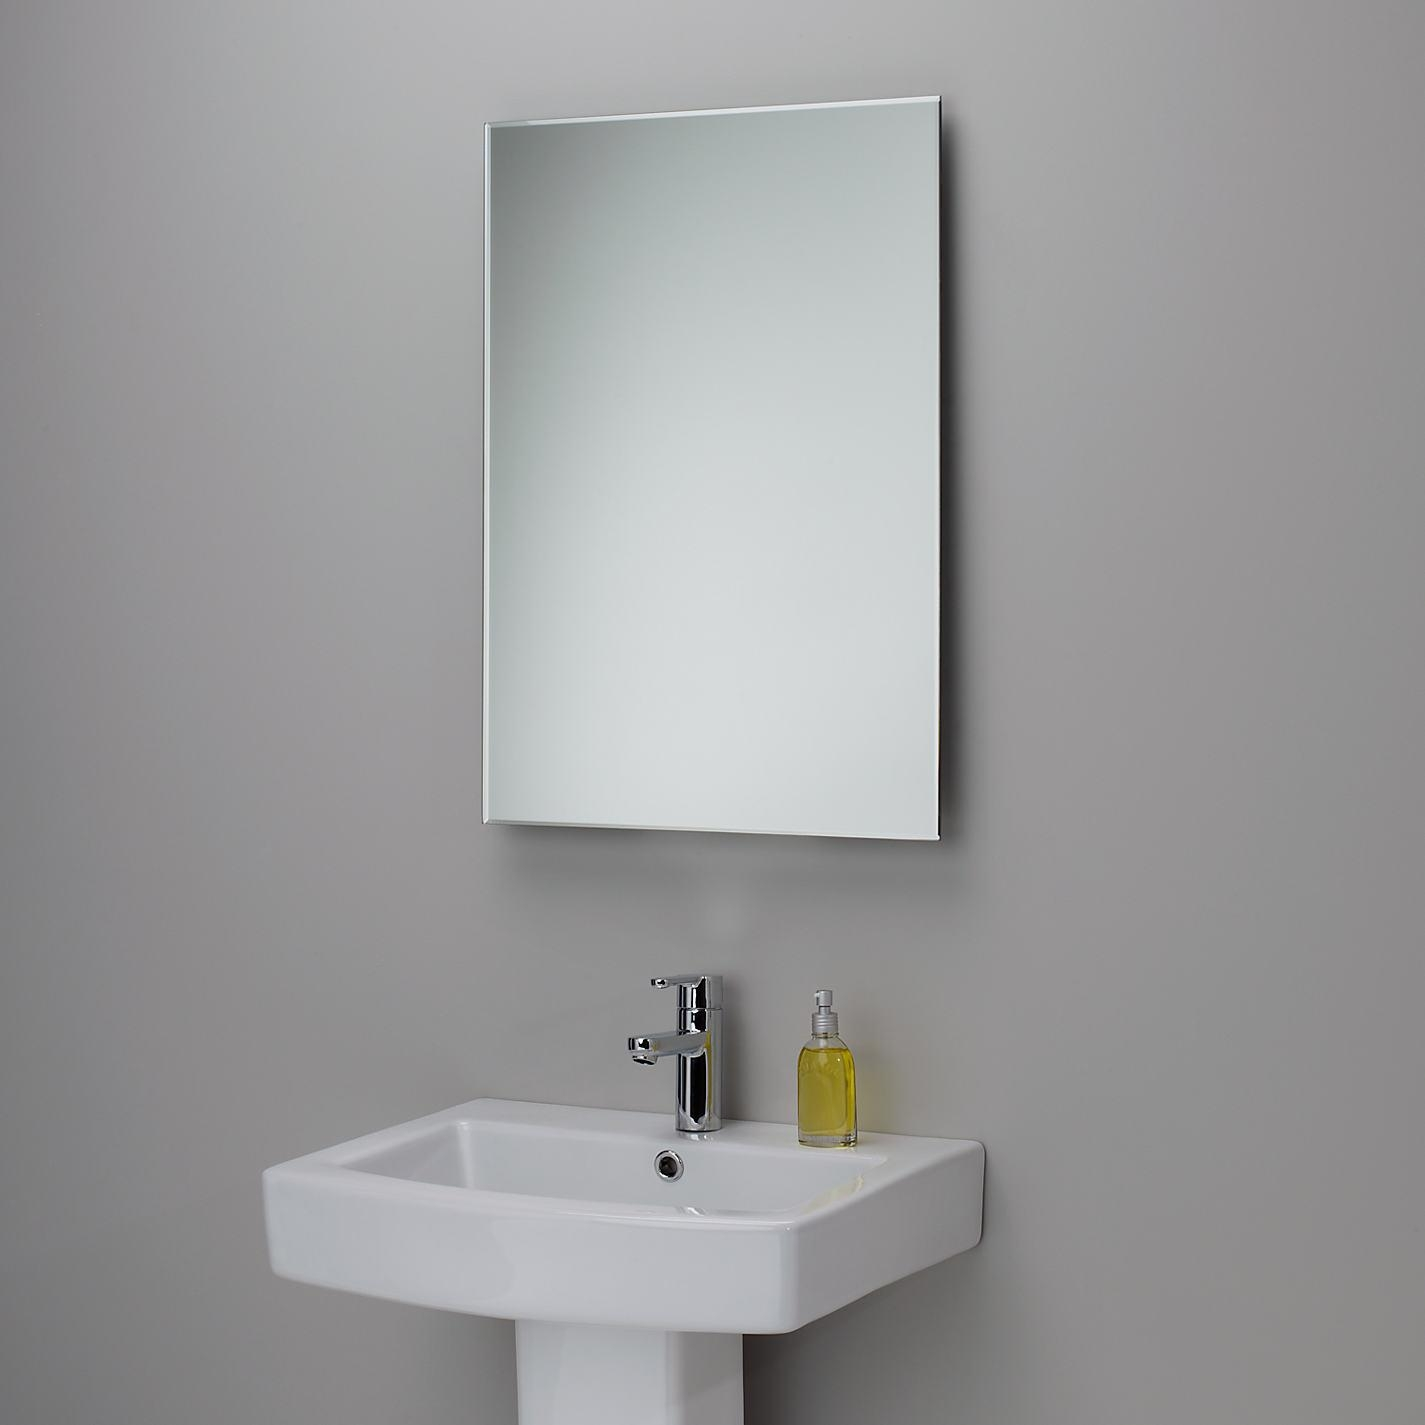 Top Custom Size Mirrors Bathrooms Decor Modern On Cool With Regard To Custom Sized Mirrors (View 19 of 20)